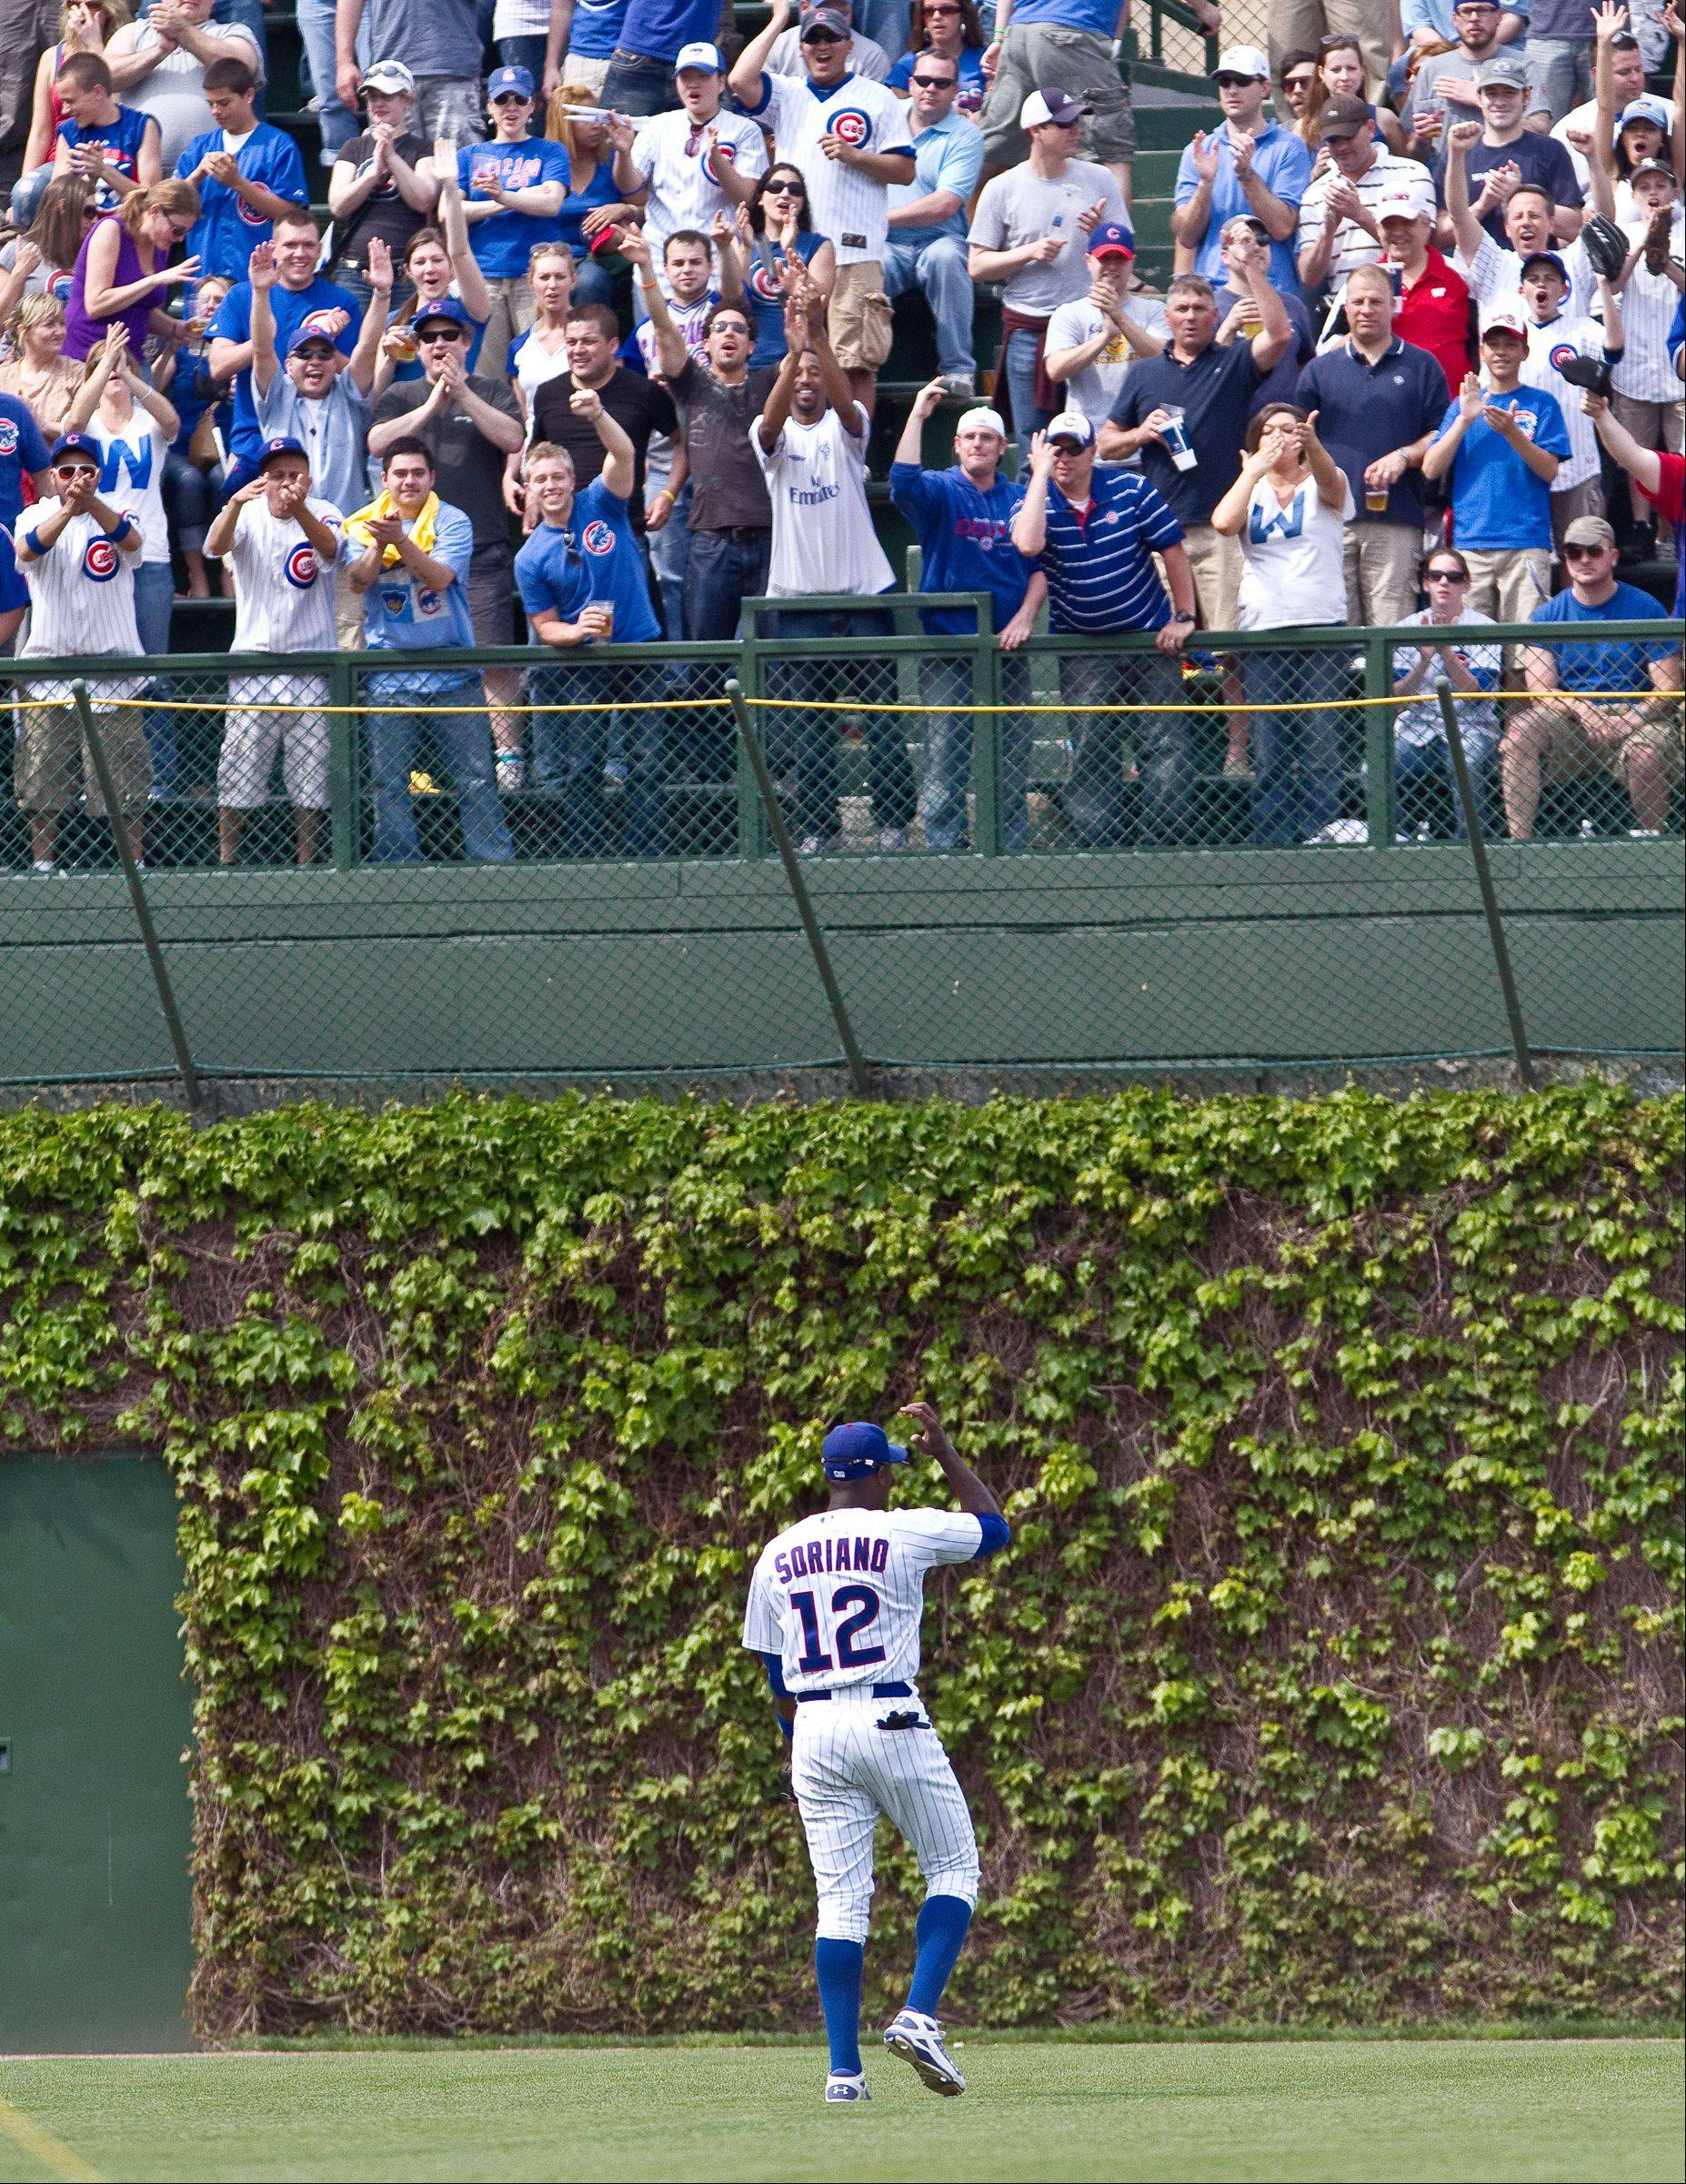 Alfonso Soriano acknowledges the cheering crowd in the left field bleachers as he takes his position during a game against Arizona in 2010. Soriano's outfield play improved greatly in 2012 once he began to respect the Cubs' new coaching staff.